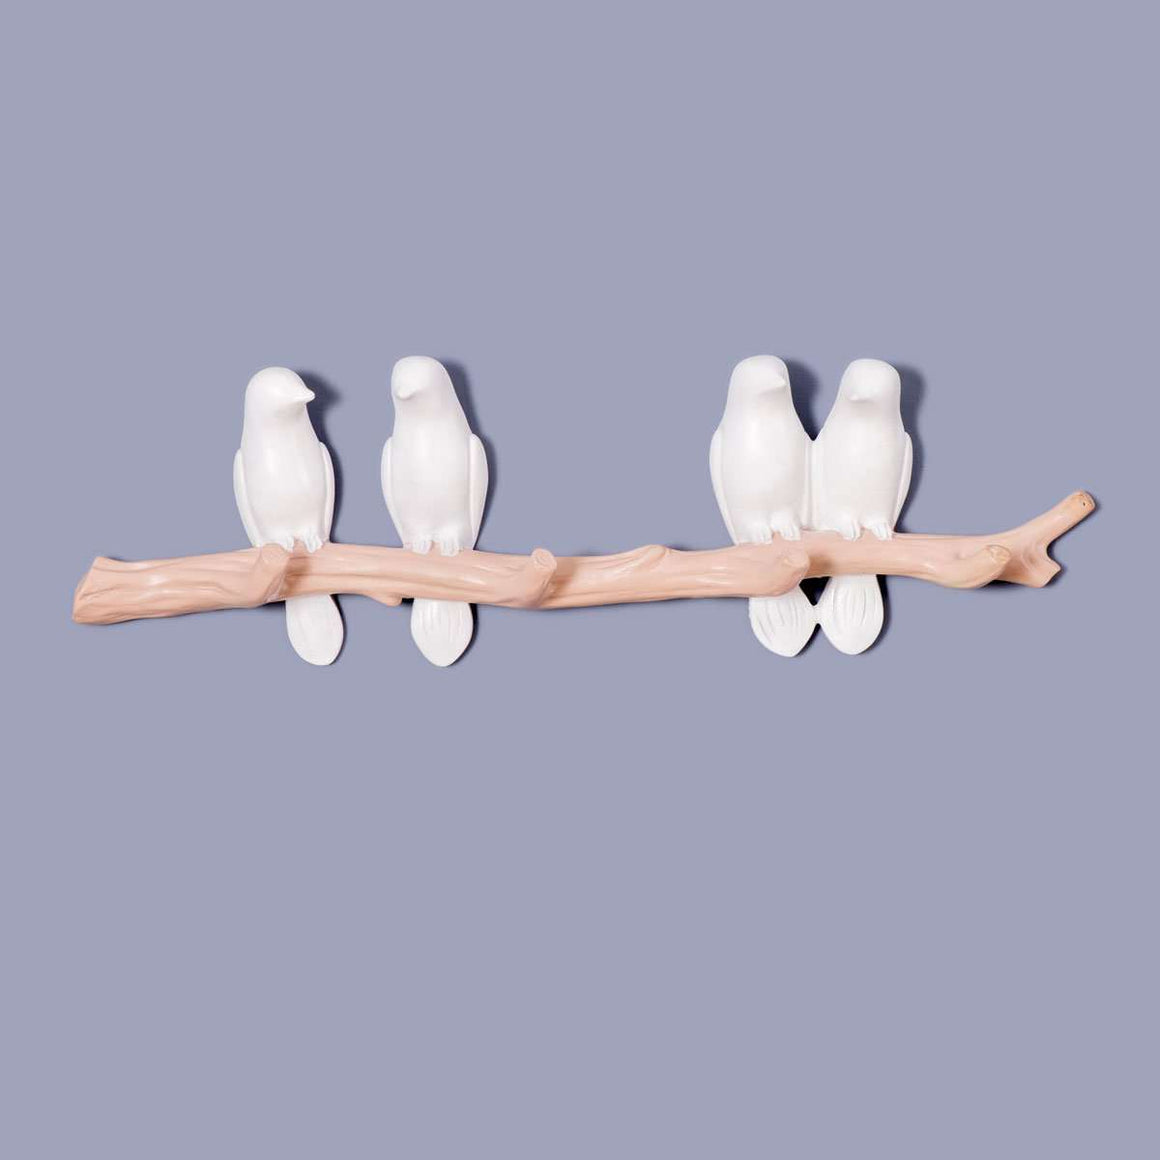 4 Birds on a Tree Wall Hook - White